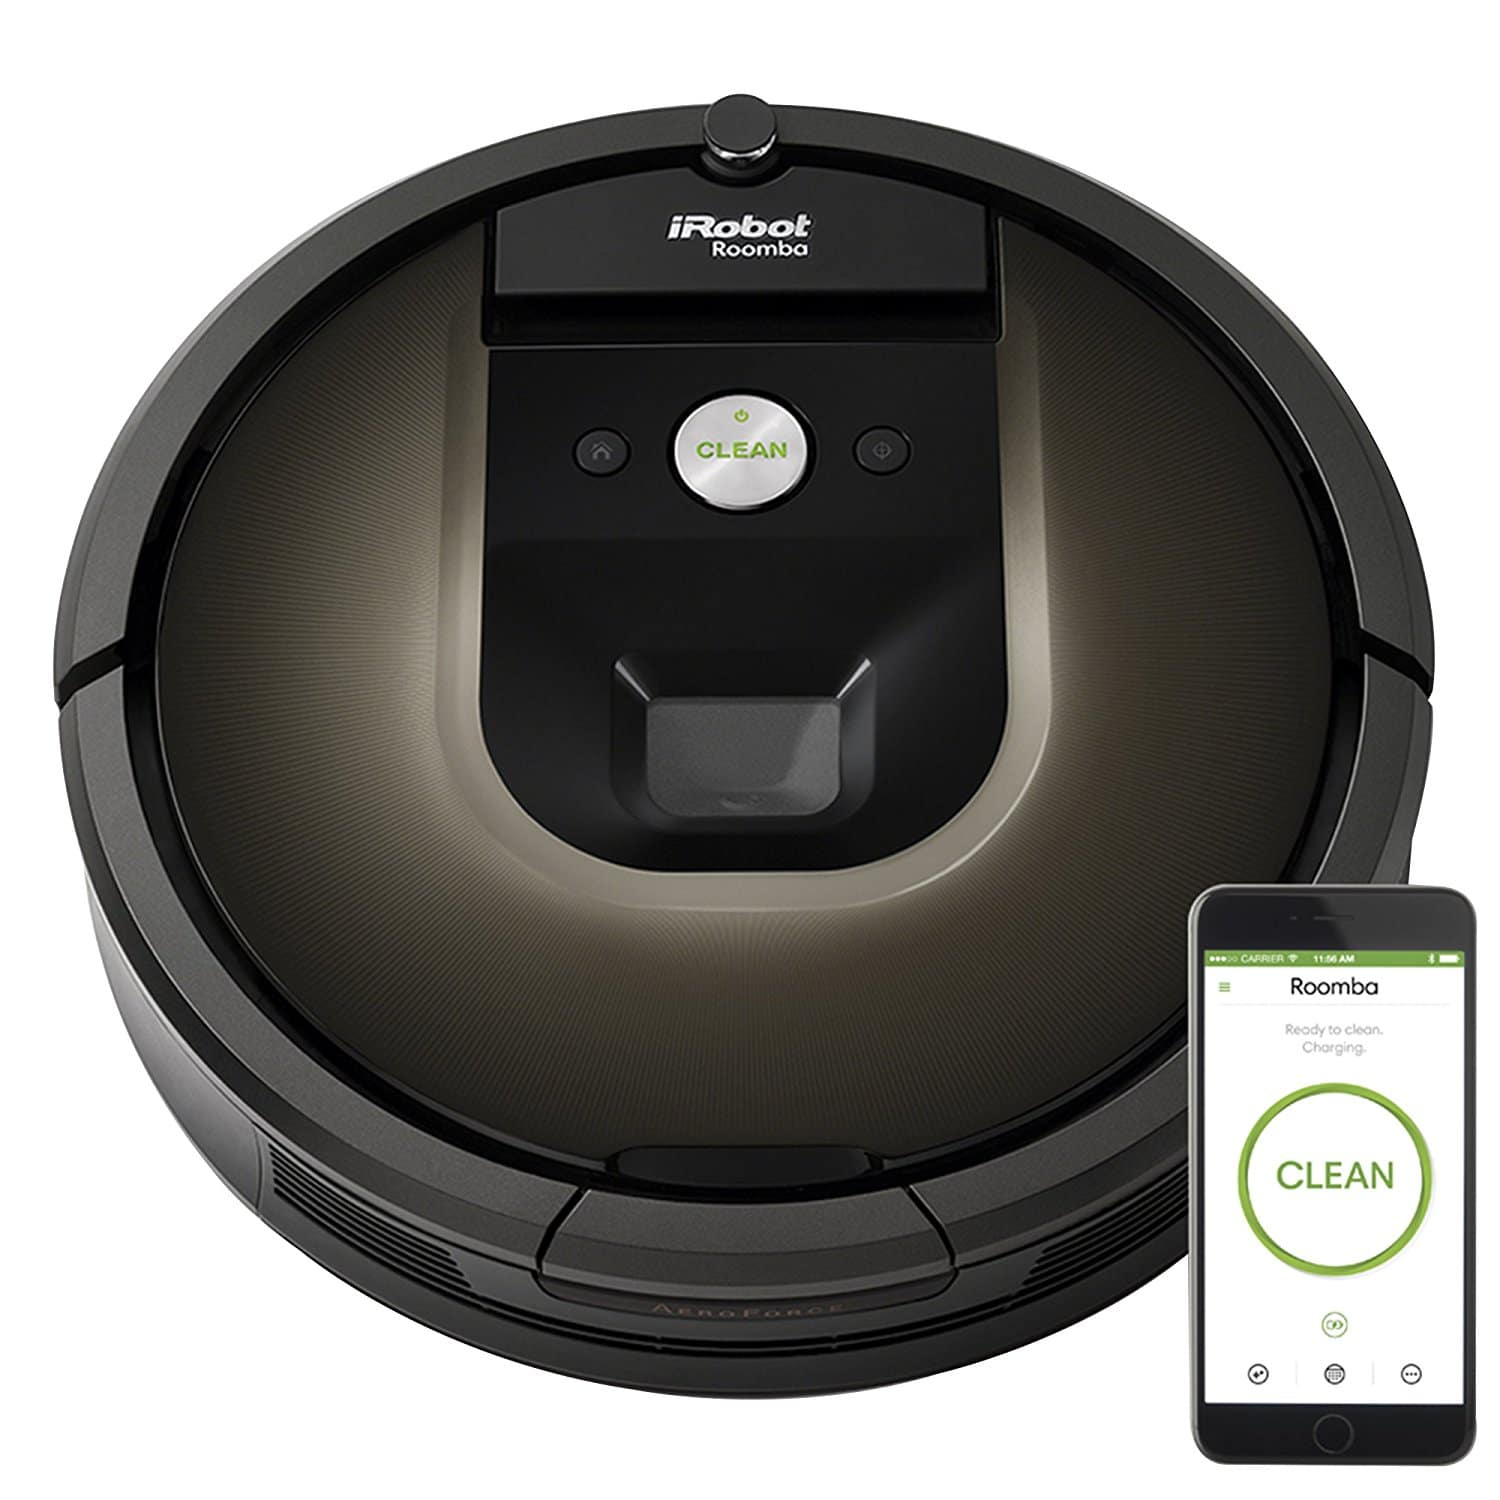 best auto vacuum: looking for a feature-rich robot vacuum? Try this instead